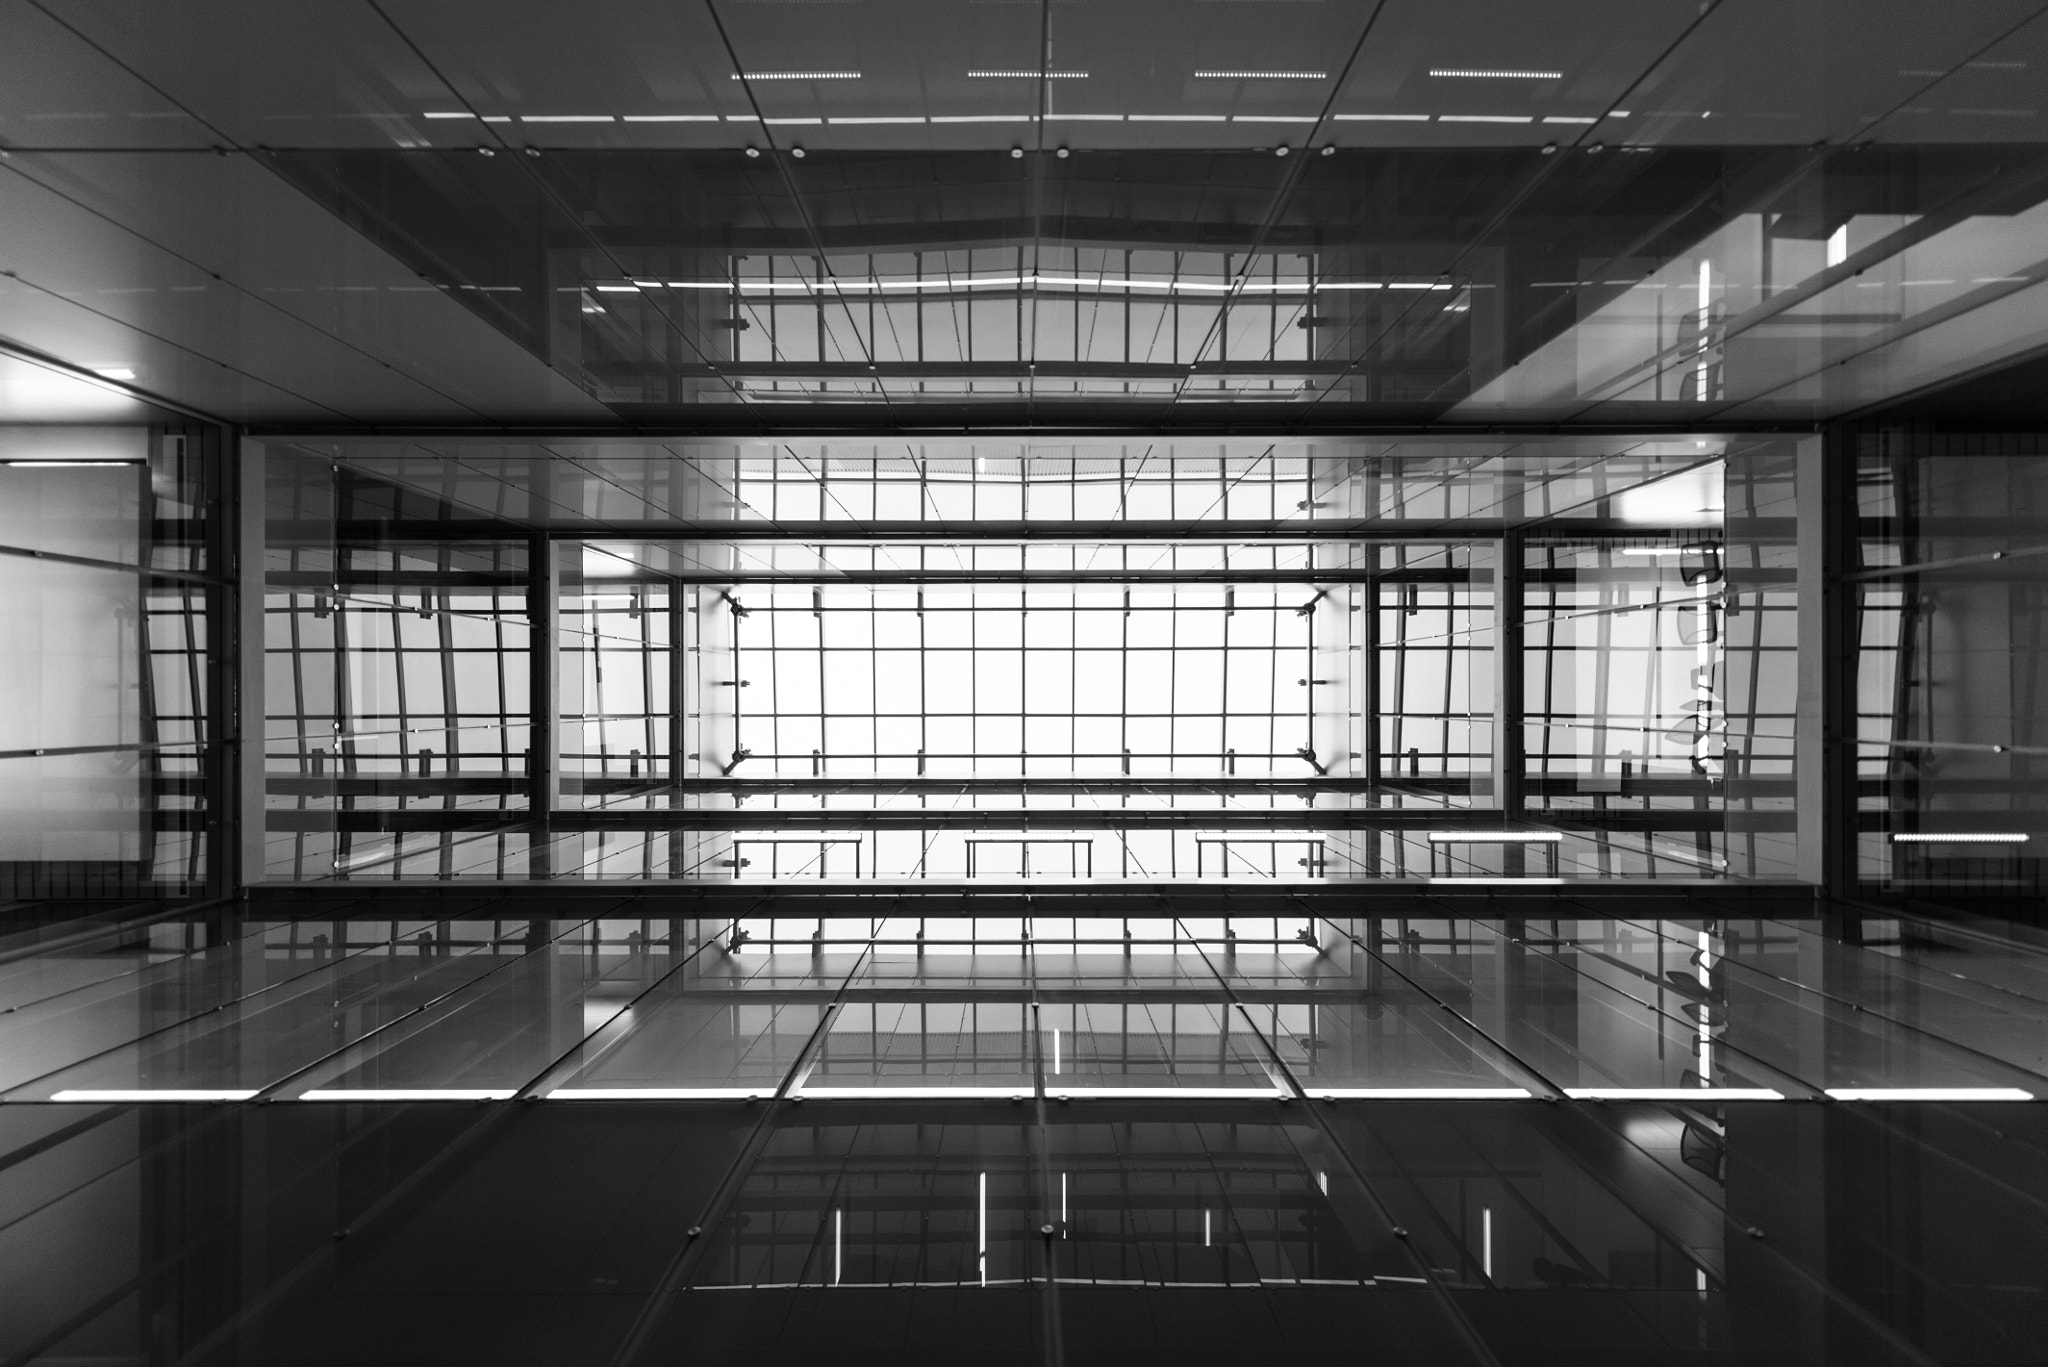 Photograph Glass Ceiling by Michael Choi on 500px